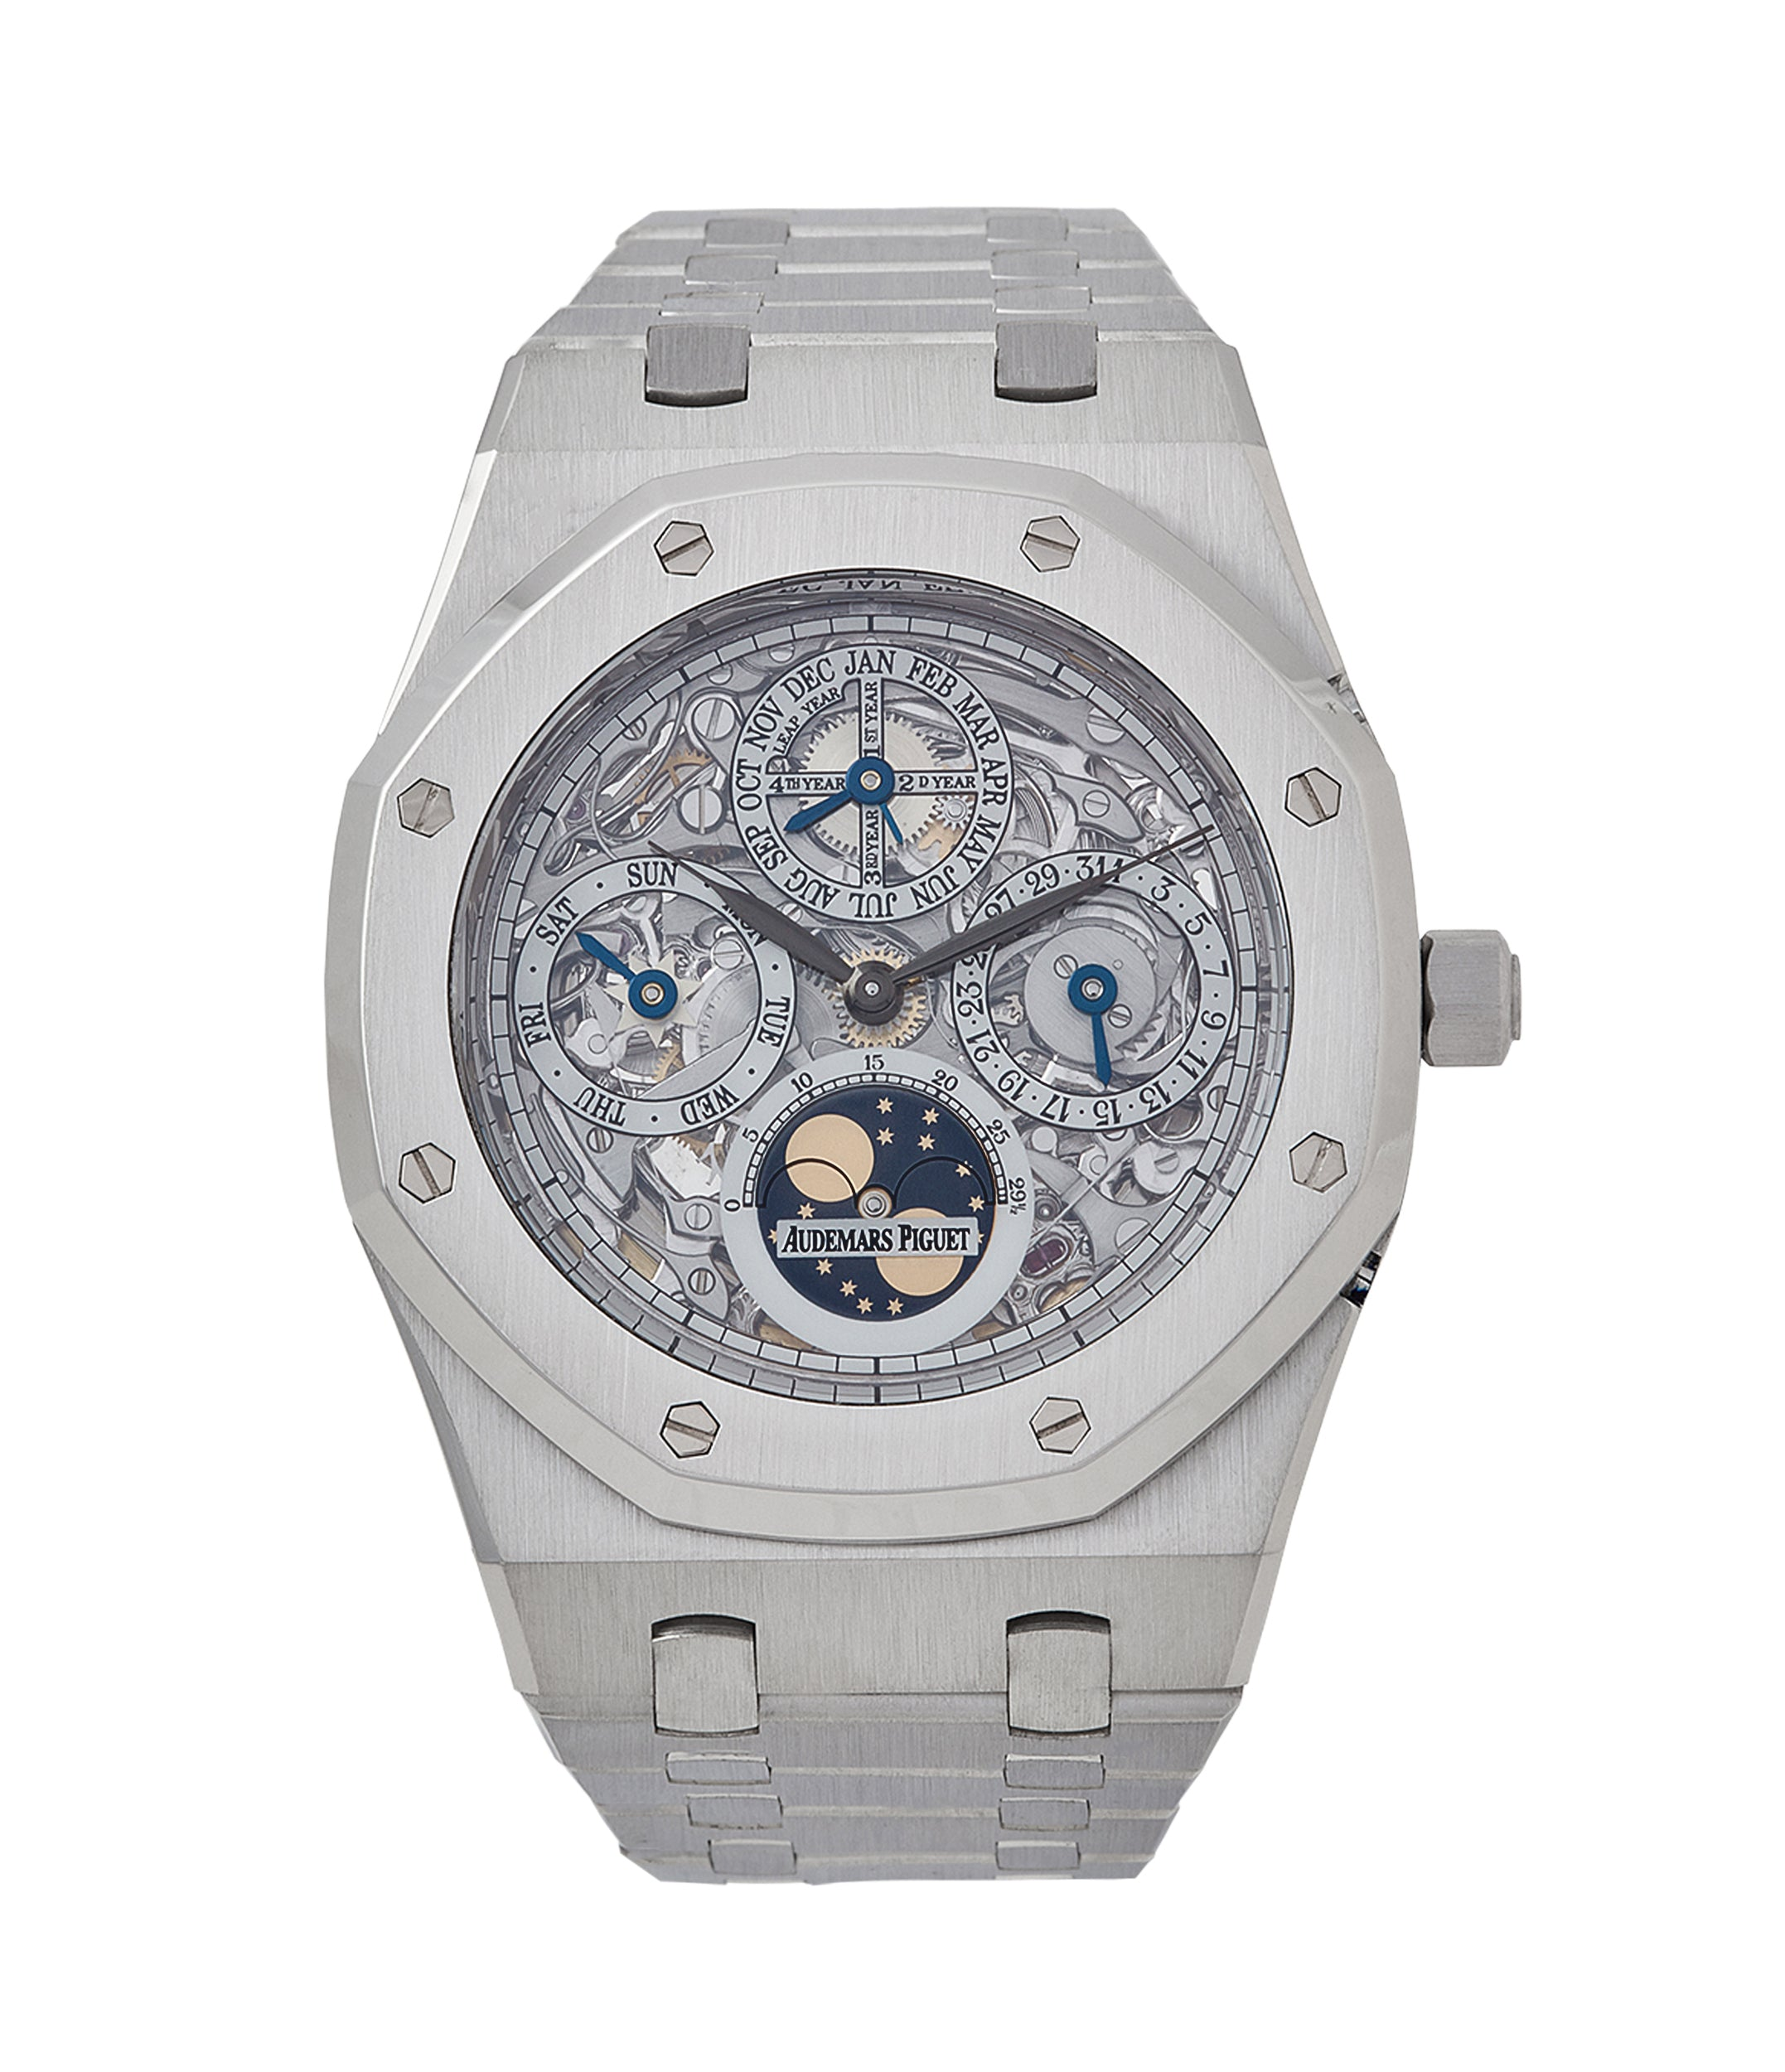 buy Audemars Piguet Royal Oak 25829PT perpetual calendar skeleton dial platinum full set pre-owned watch for sale online at A Collected Man London UK specialist of rare watches